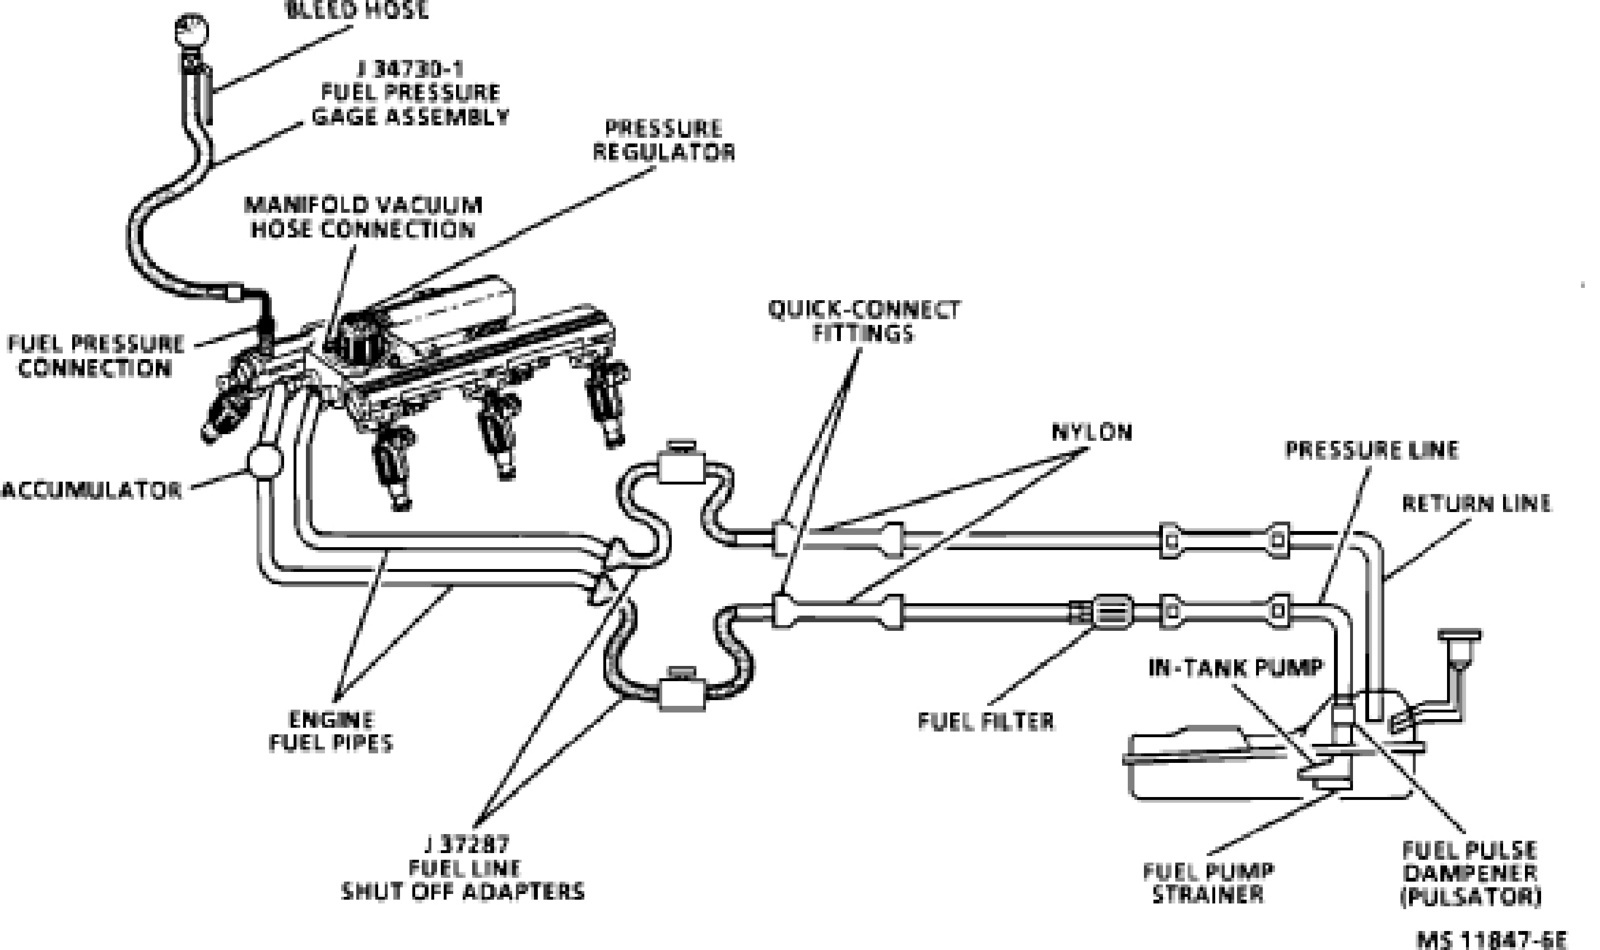 59 Cummins Fuel Line Diagram